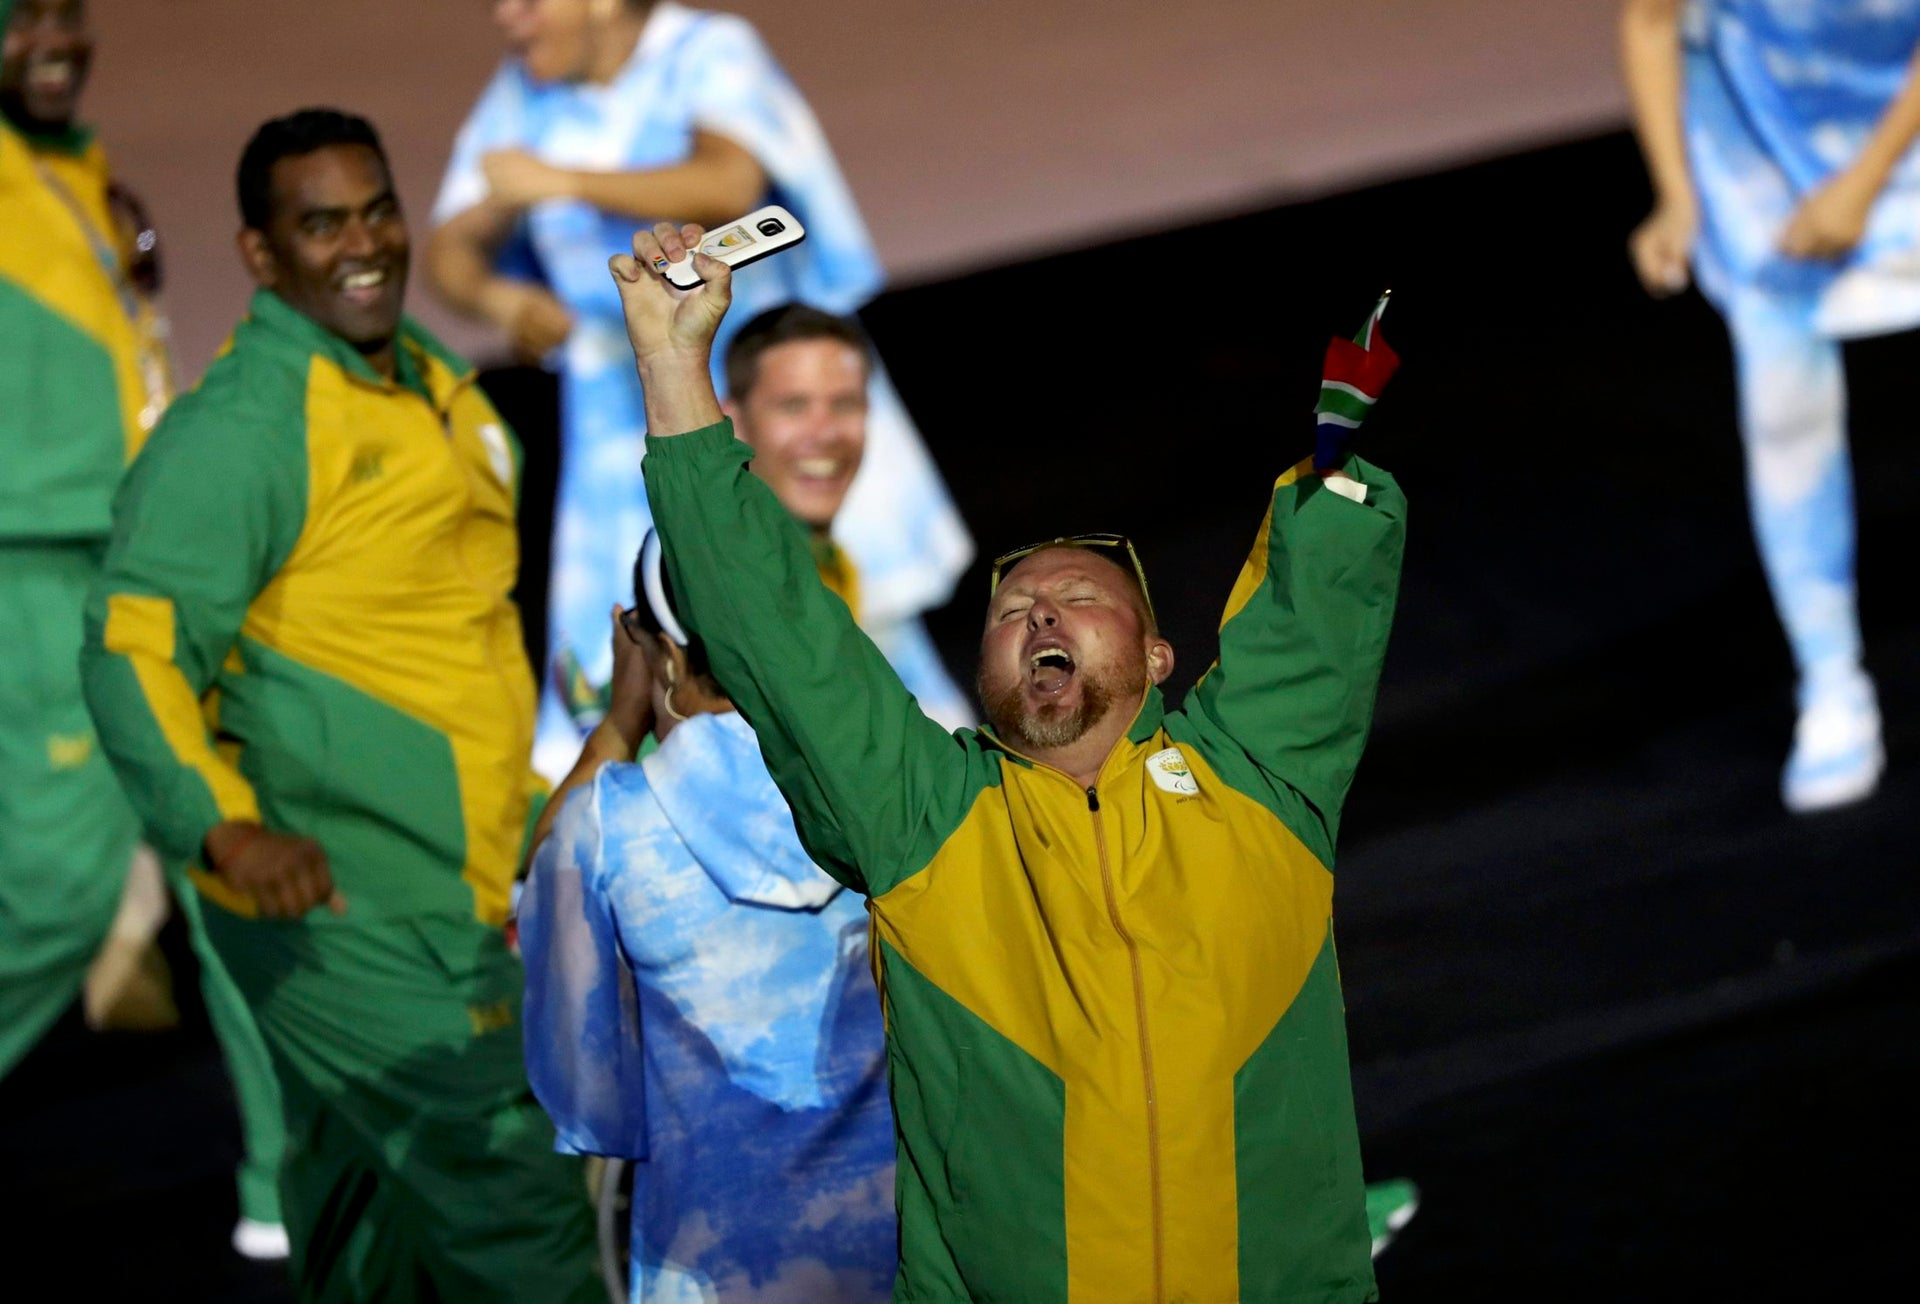 2016 Rio Paralympics - Opening ceremony - Maracana - Rio de Janeiro, Brazil - 07/09/2016. South African athletes cheer as they take part in the opening ceremony.